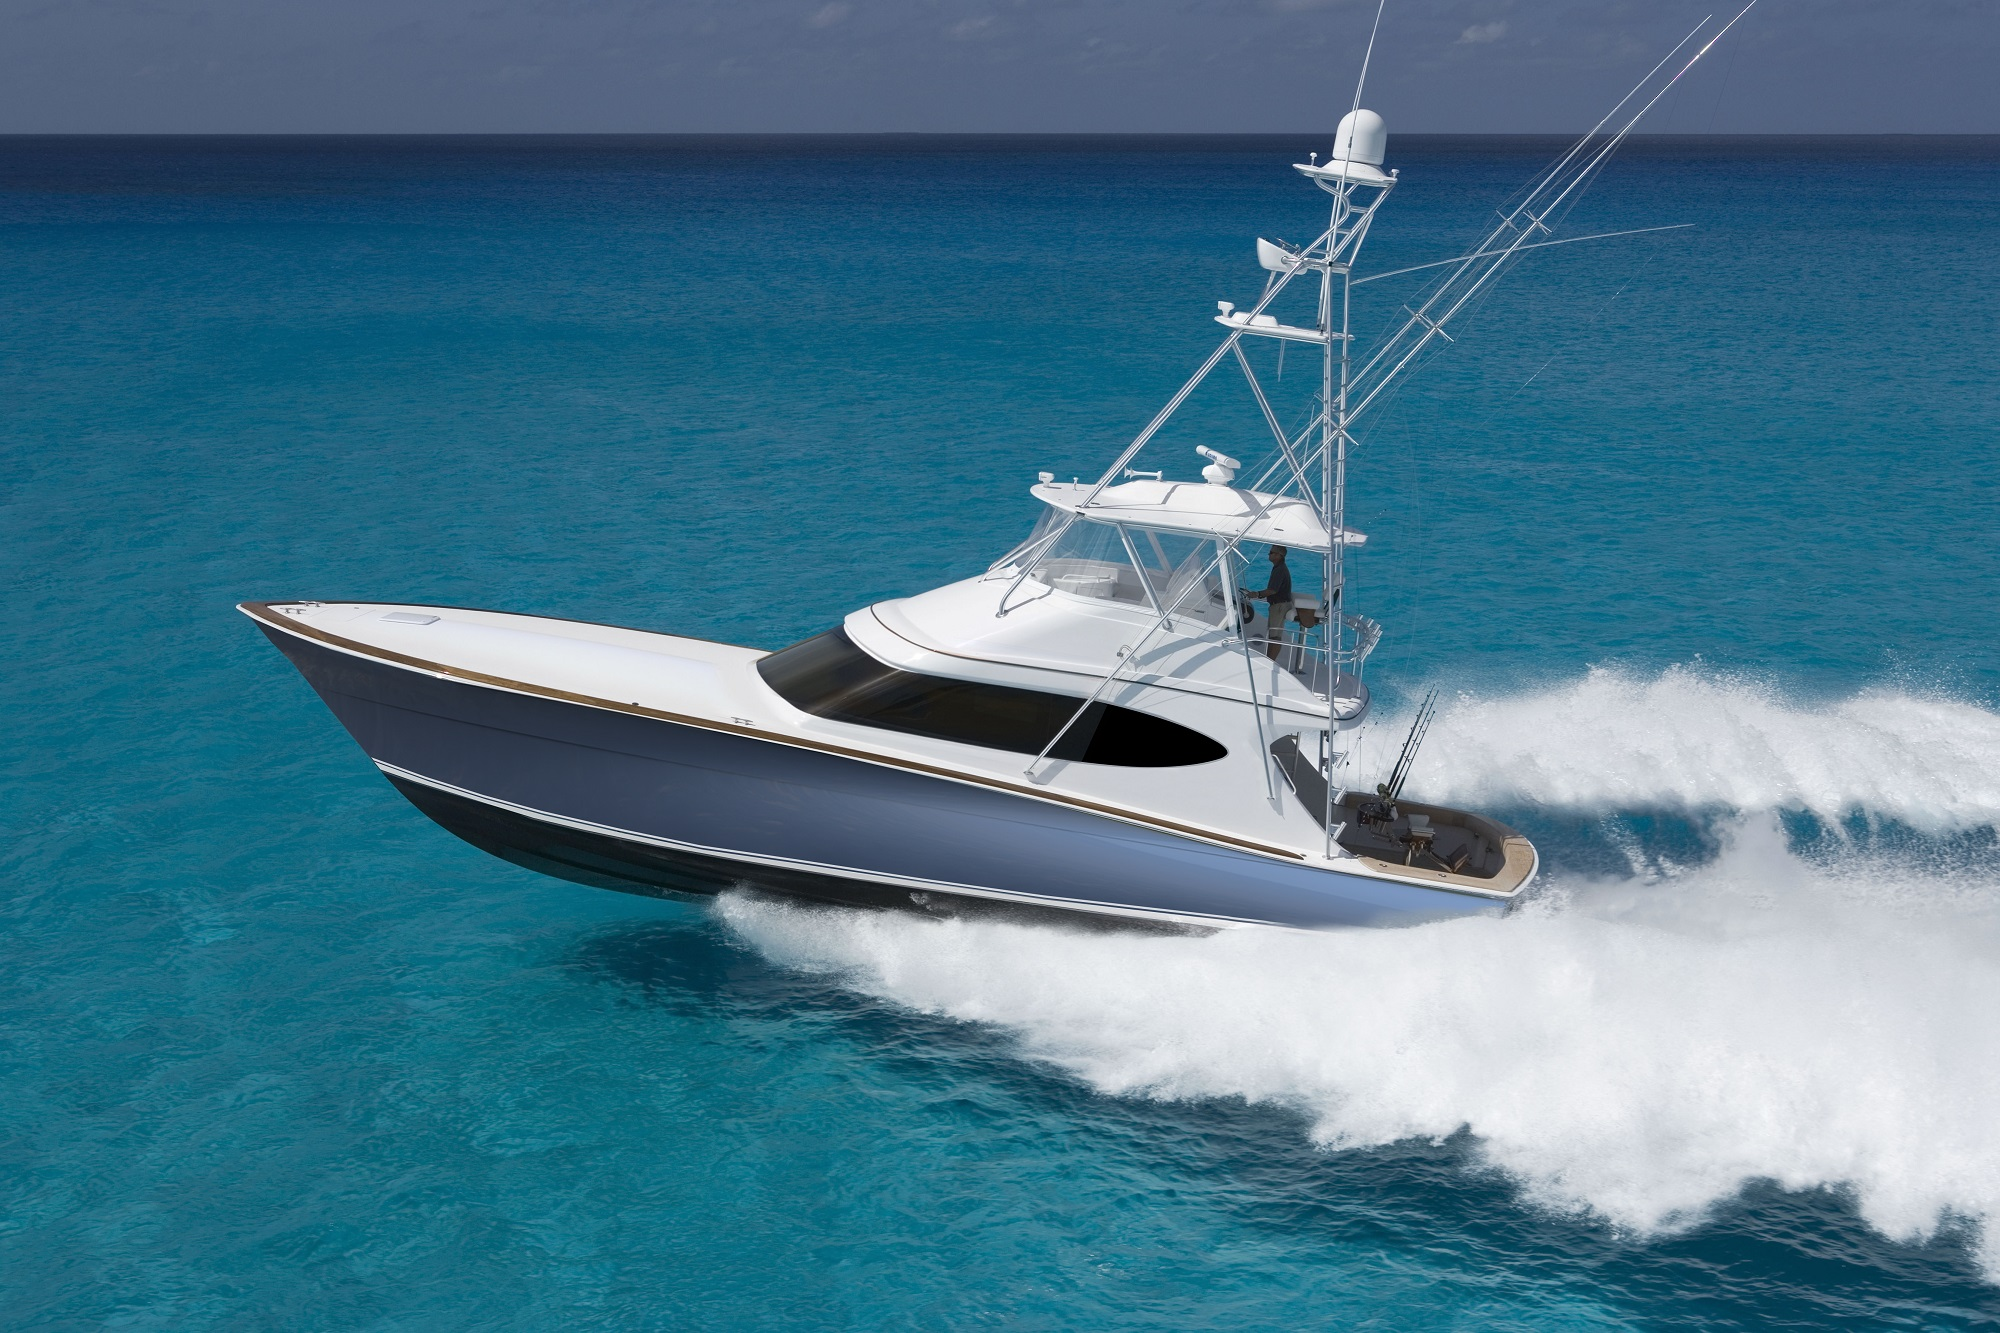 GT59 Convertible Sportfishing Yacht Hatteras Yachts